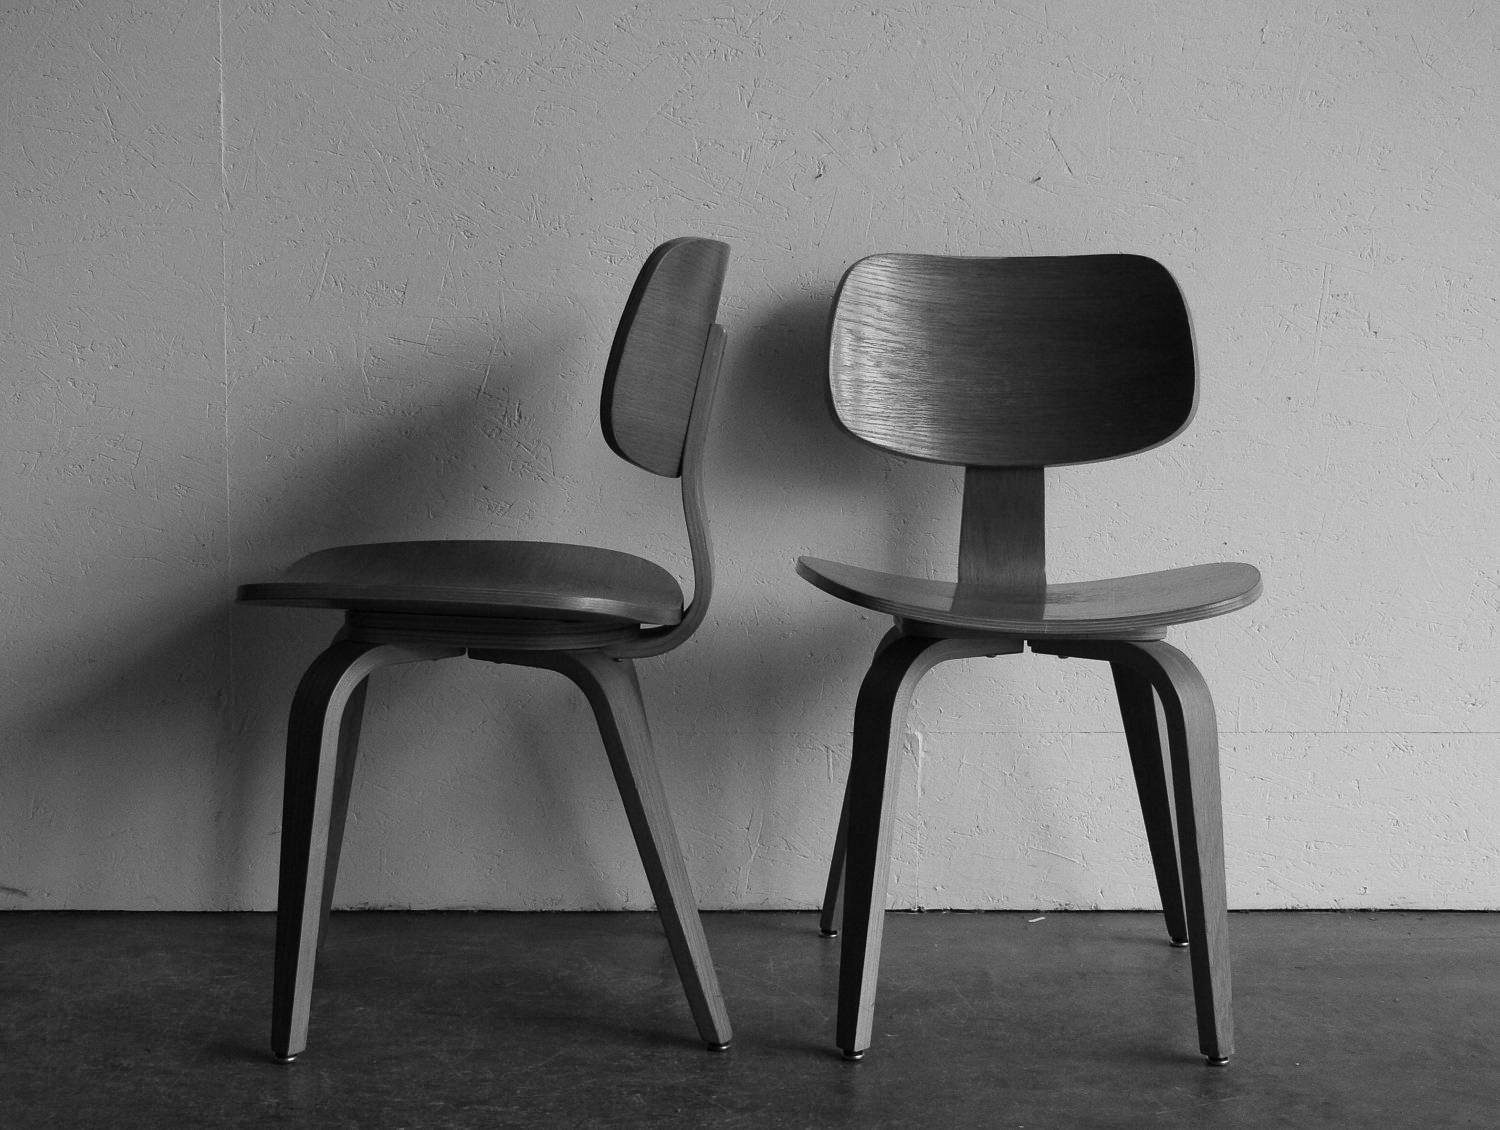 decoration-modern-vintage-chairs-with-on-hold-vintage-mid-century-modern-thonet-plywood-chair-by-comod-24.jpg